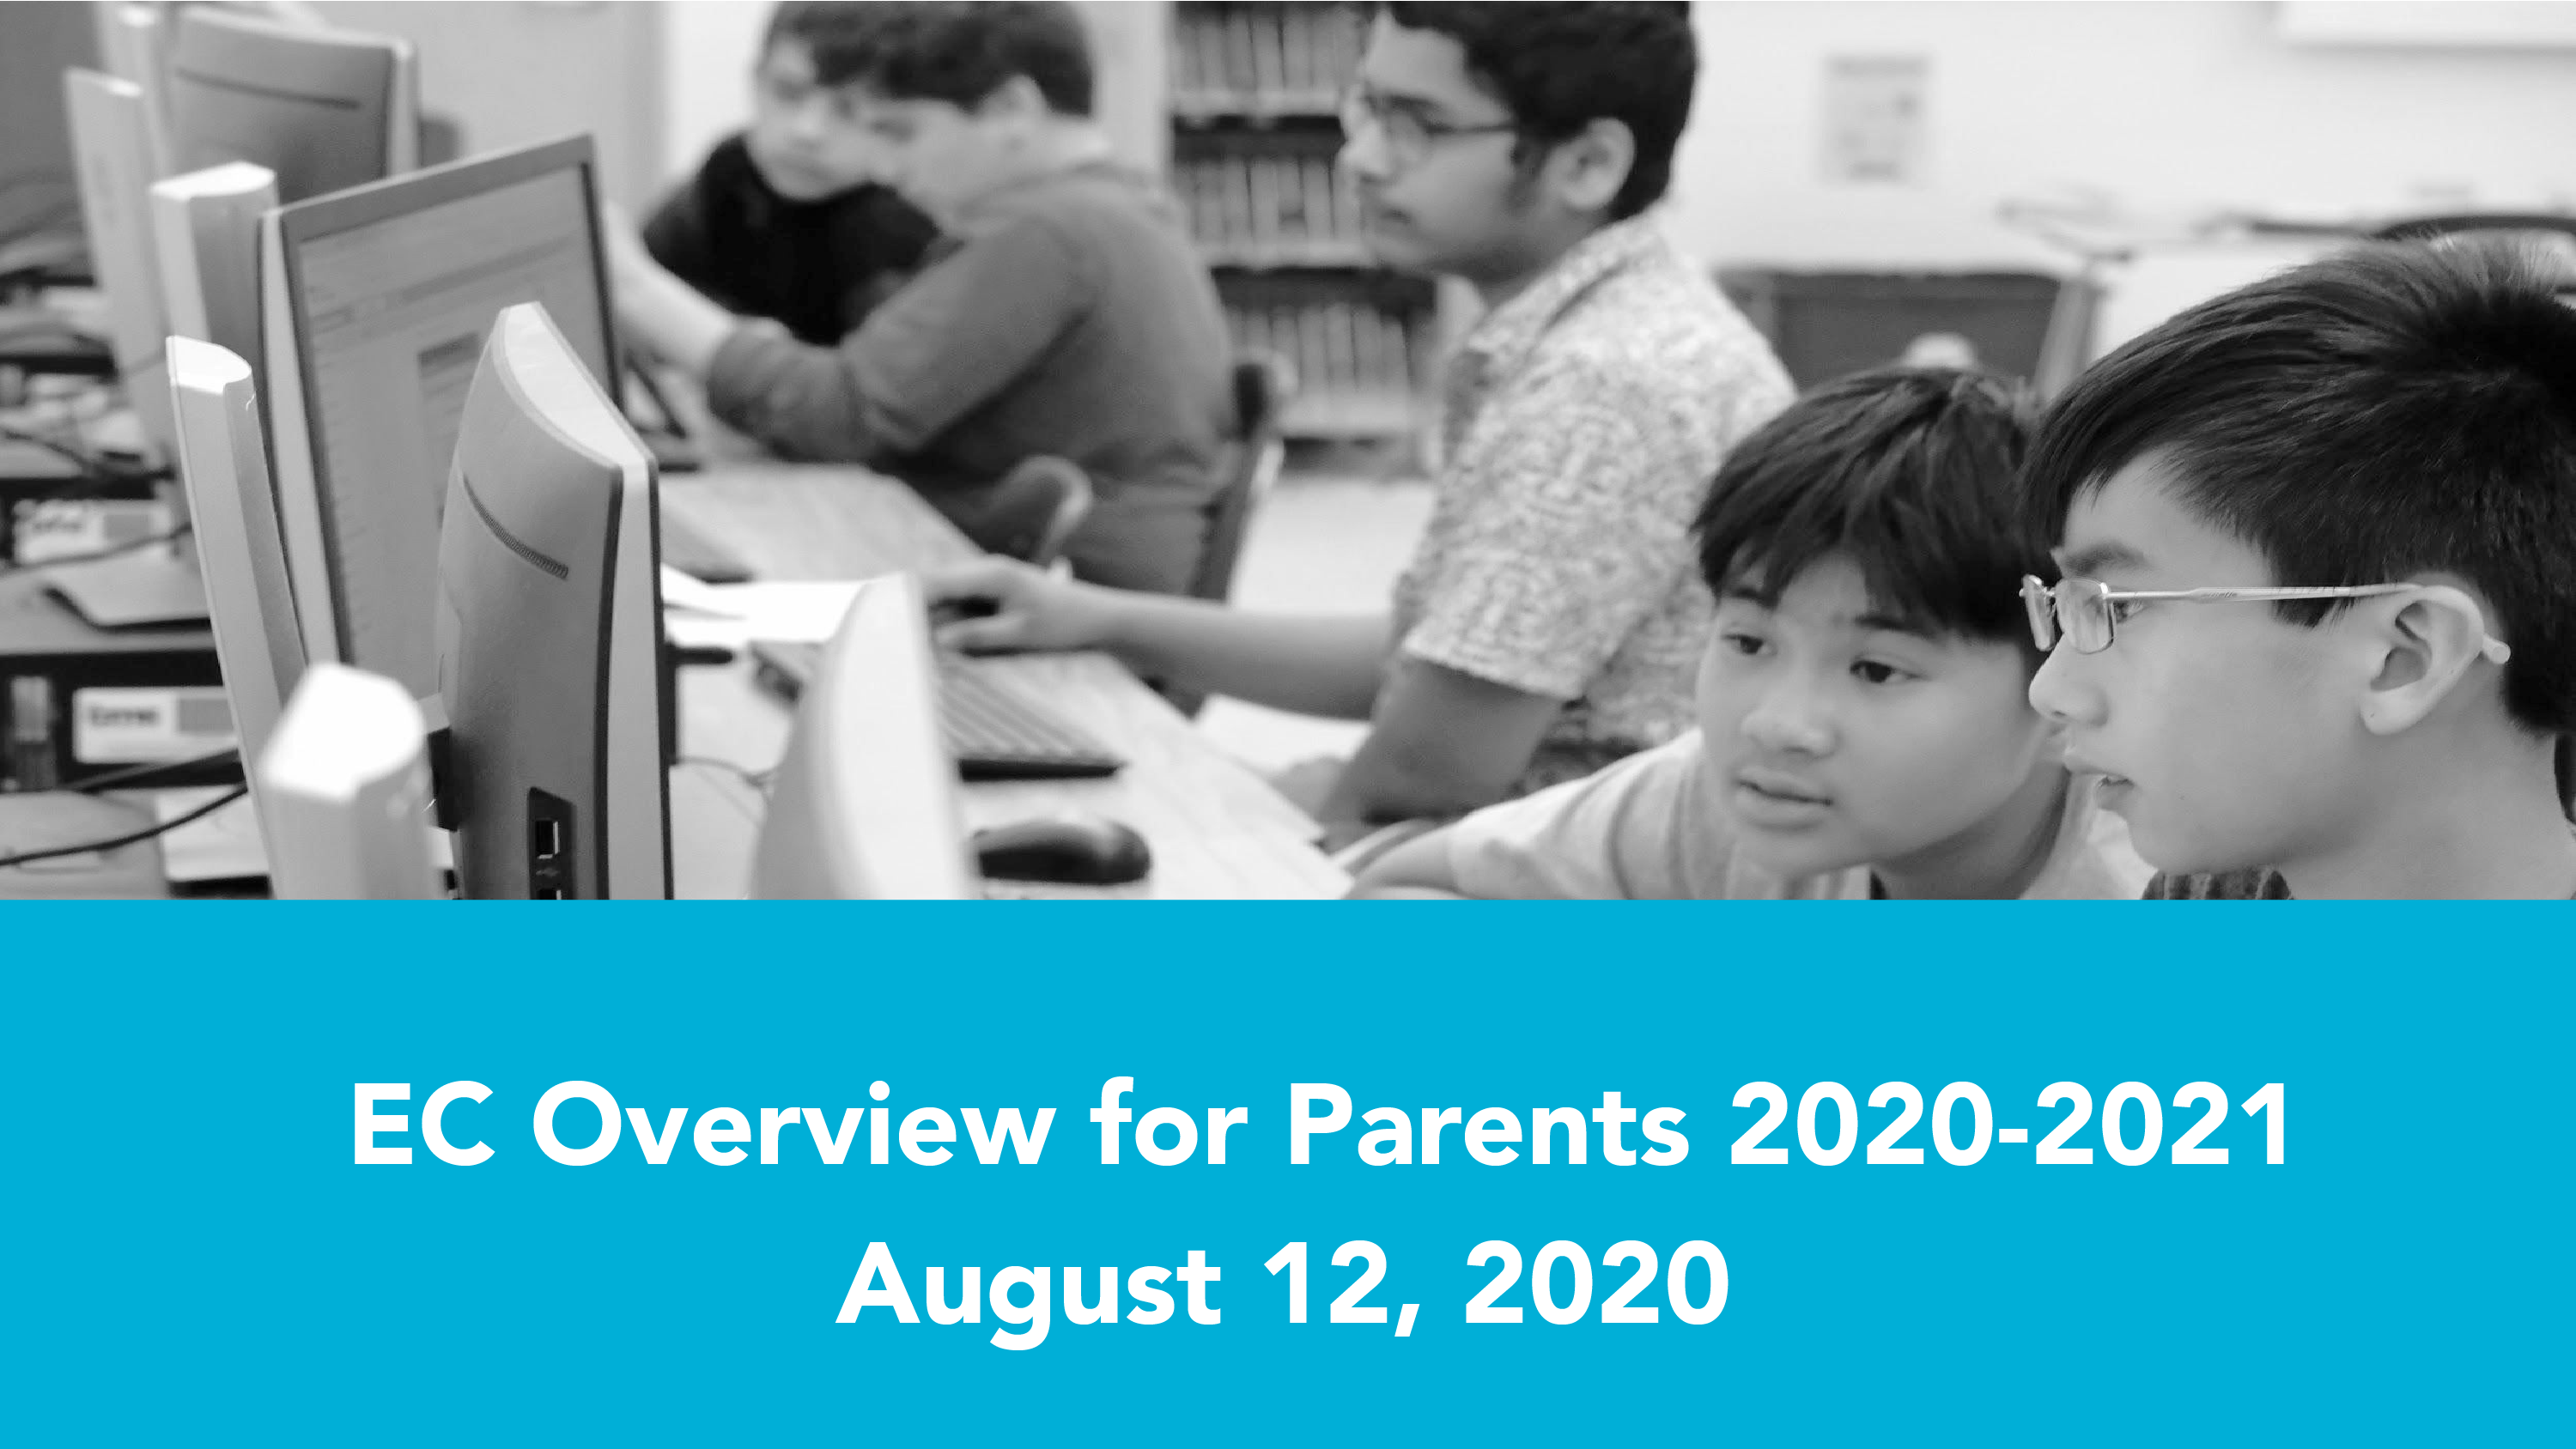 EC Overview for Parents 2020-2021.png